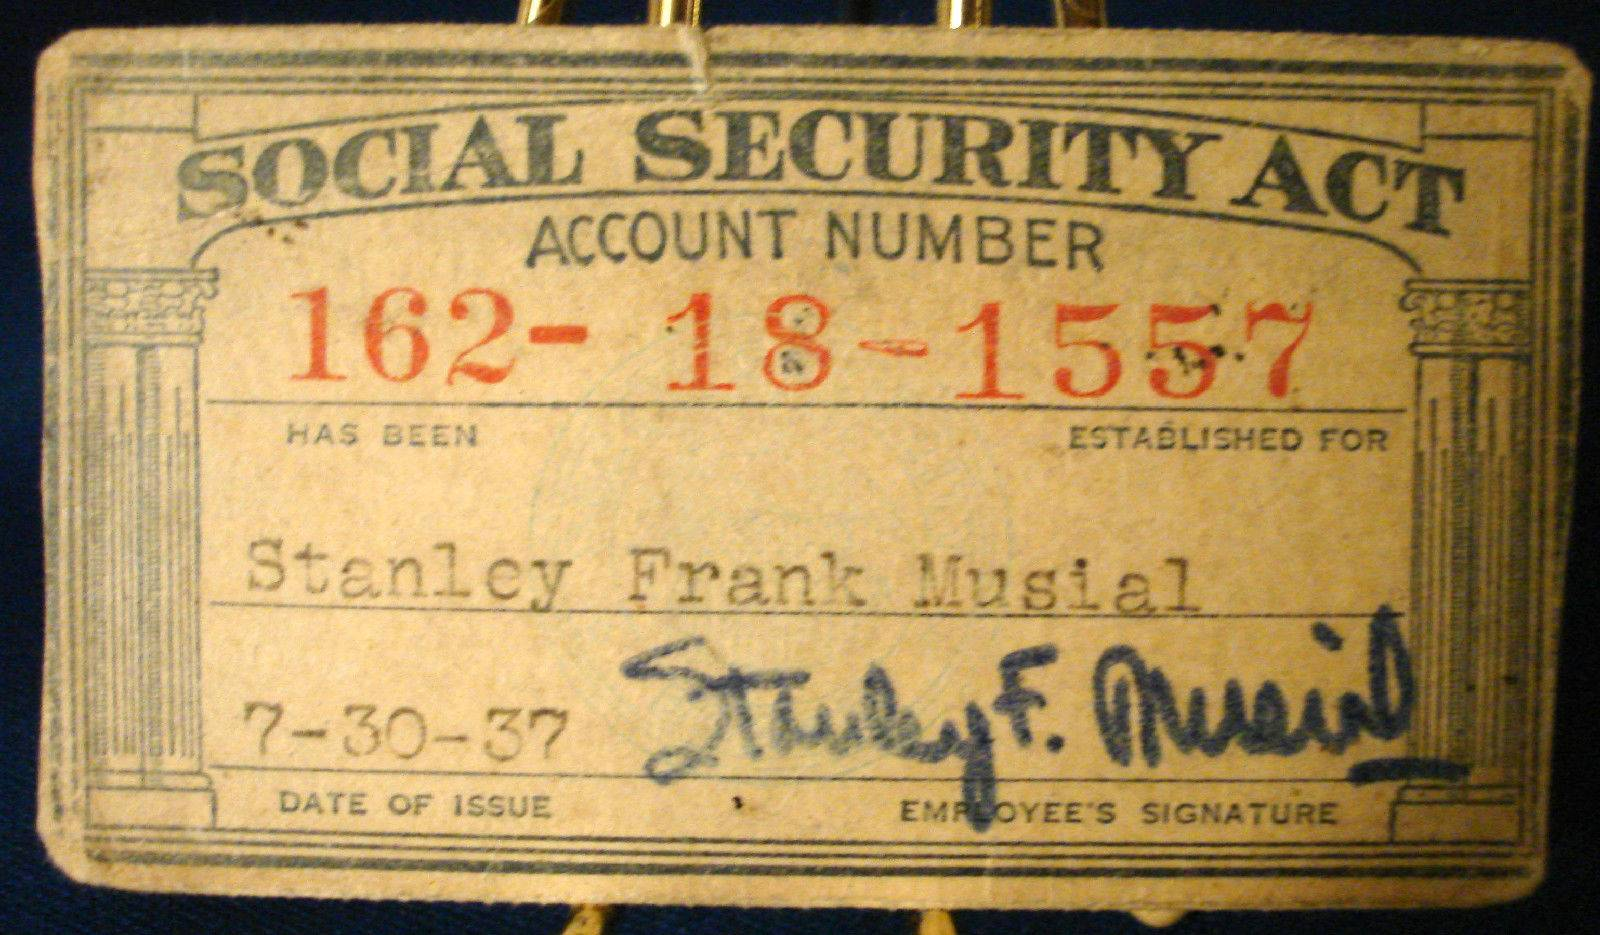 STAN MUSIAL's OWN 1937 Social Security Card FROM MUSIAL ESTATE